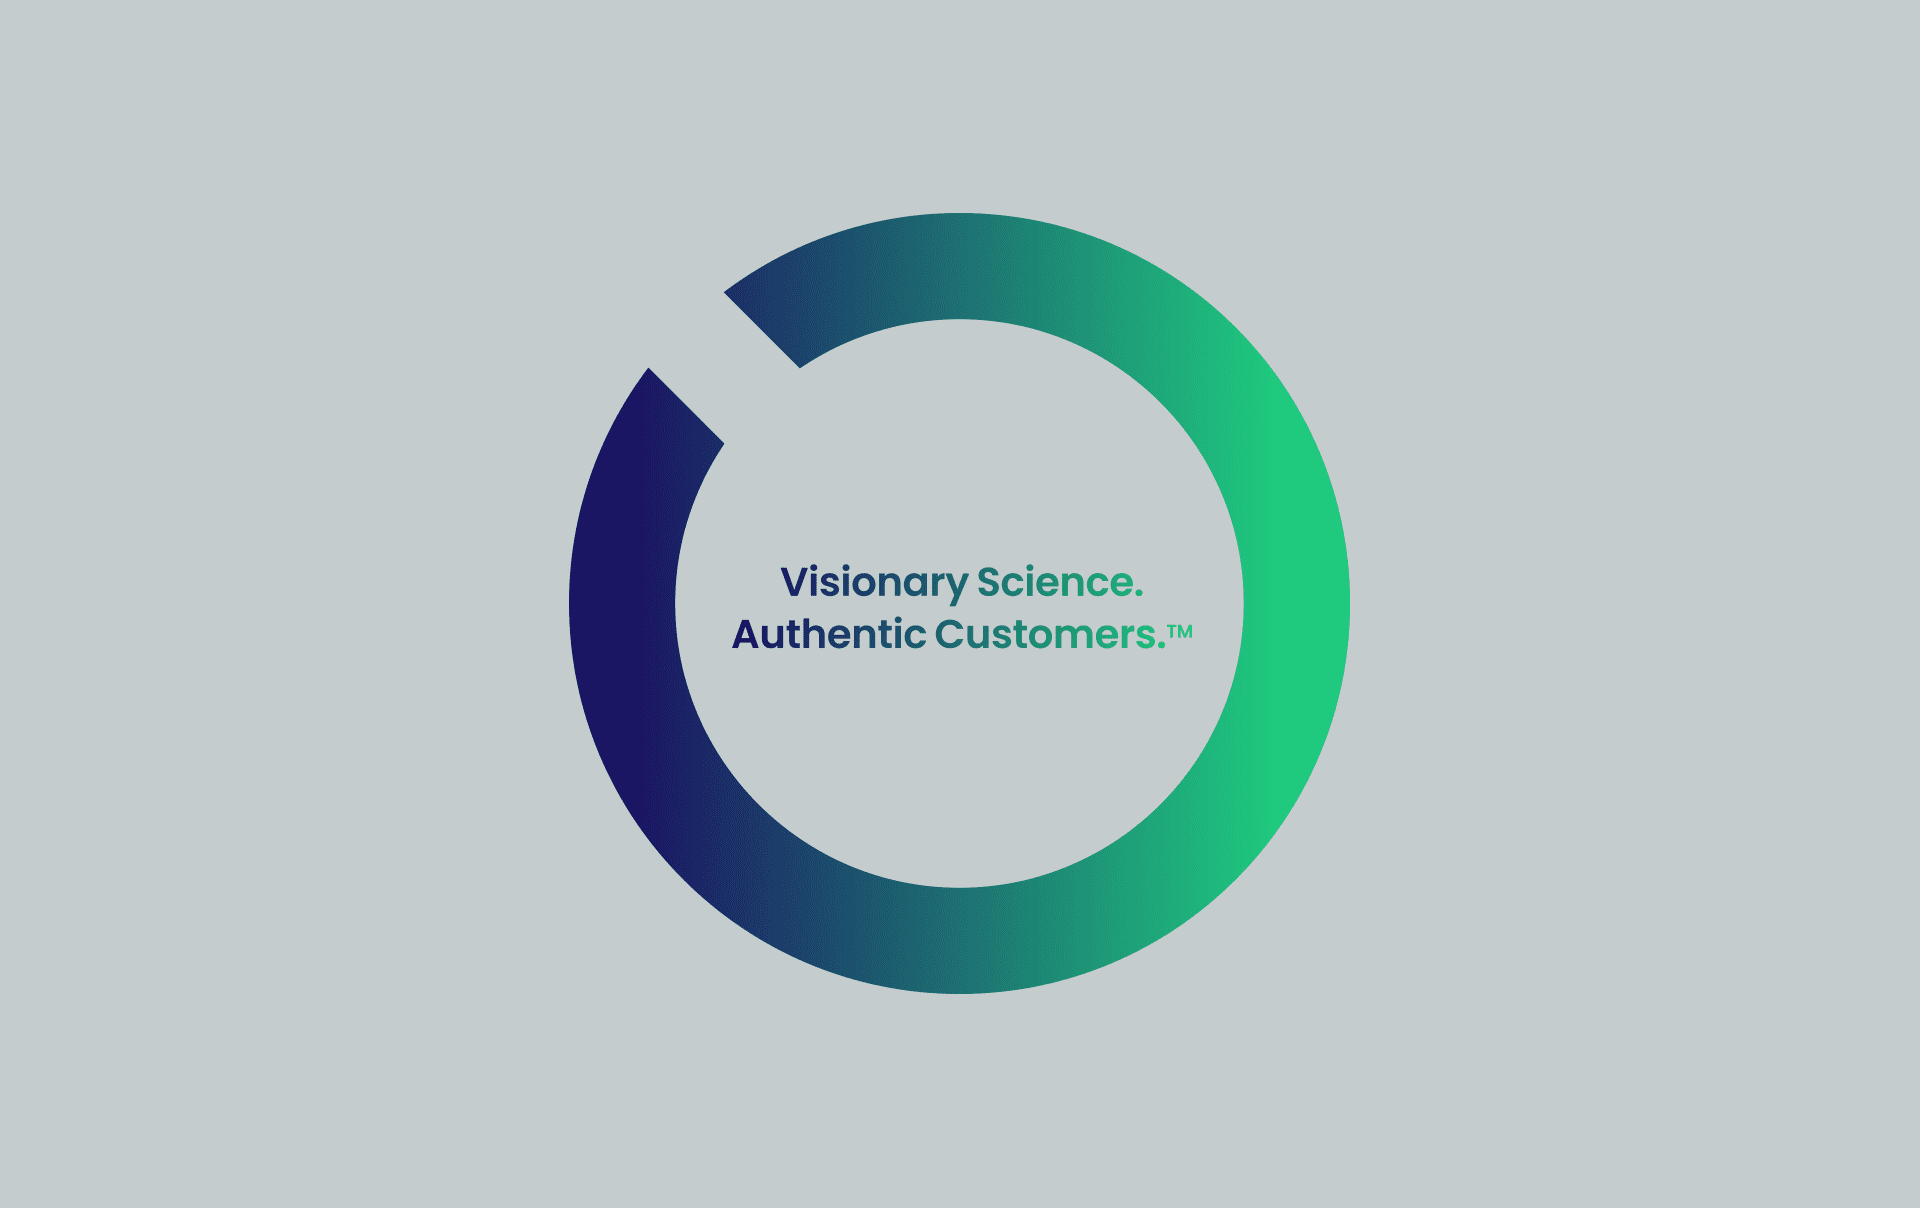 Outseer logo Visionary Science. Authentic Customers.